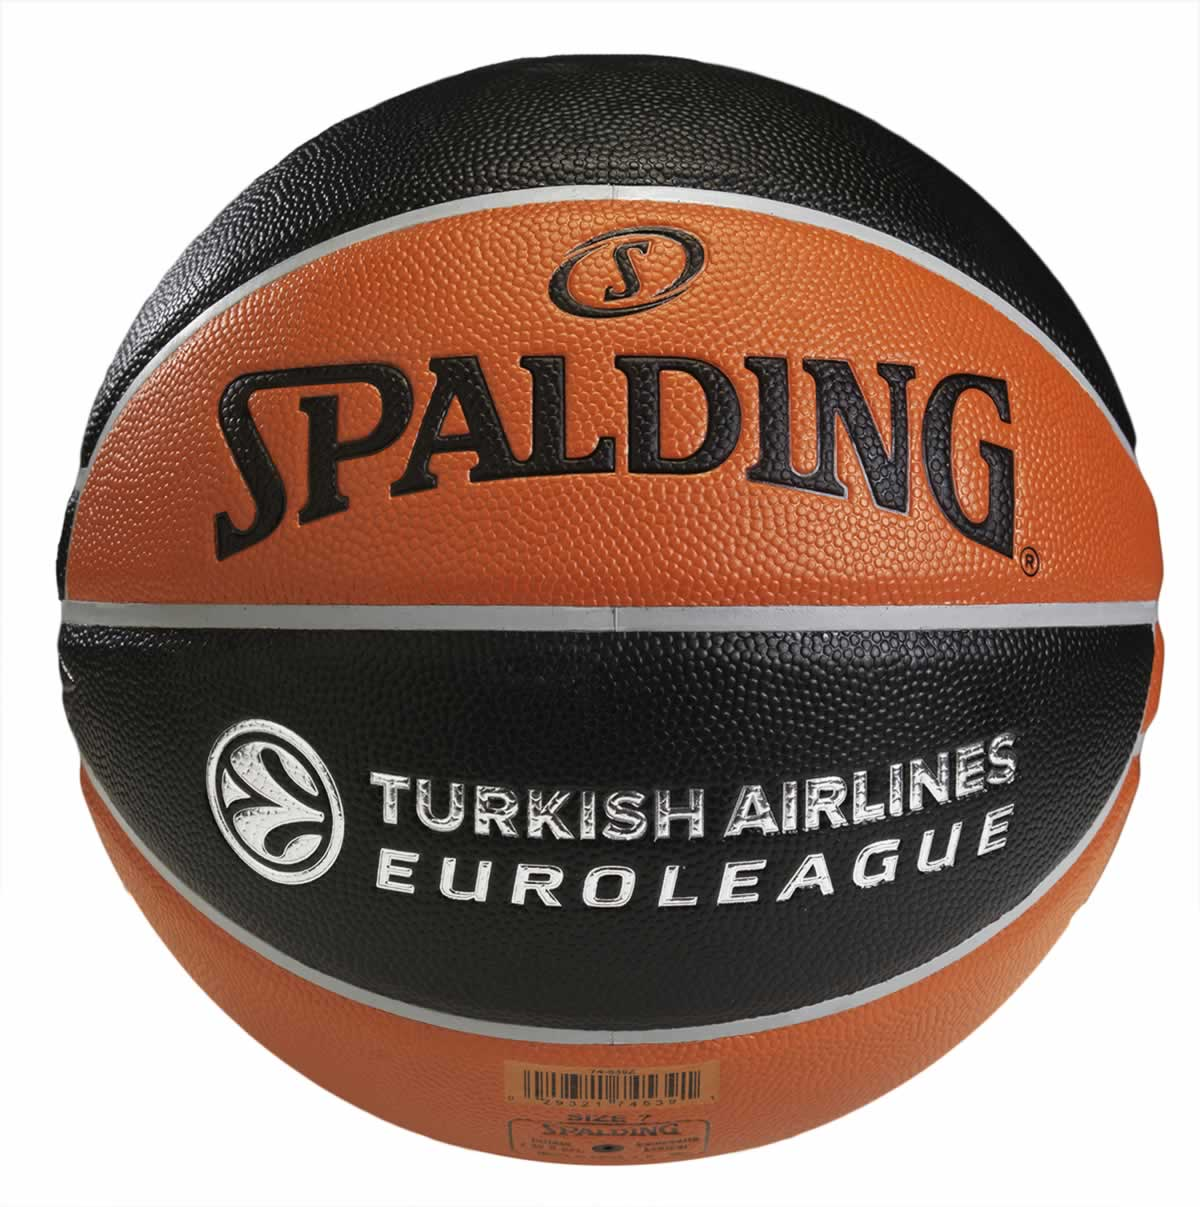 Spalding TF-500 Turkish Airlines Euroleague Basket Topu No:7